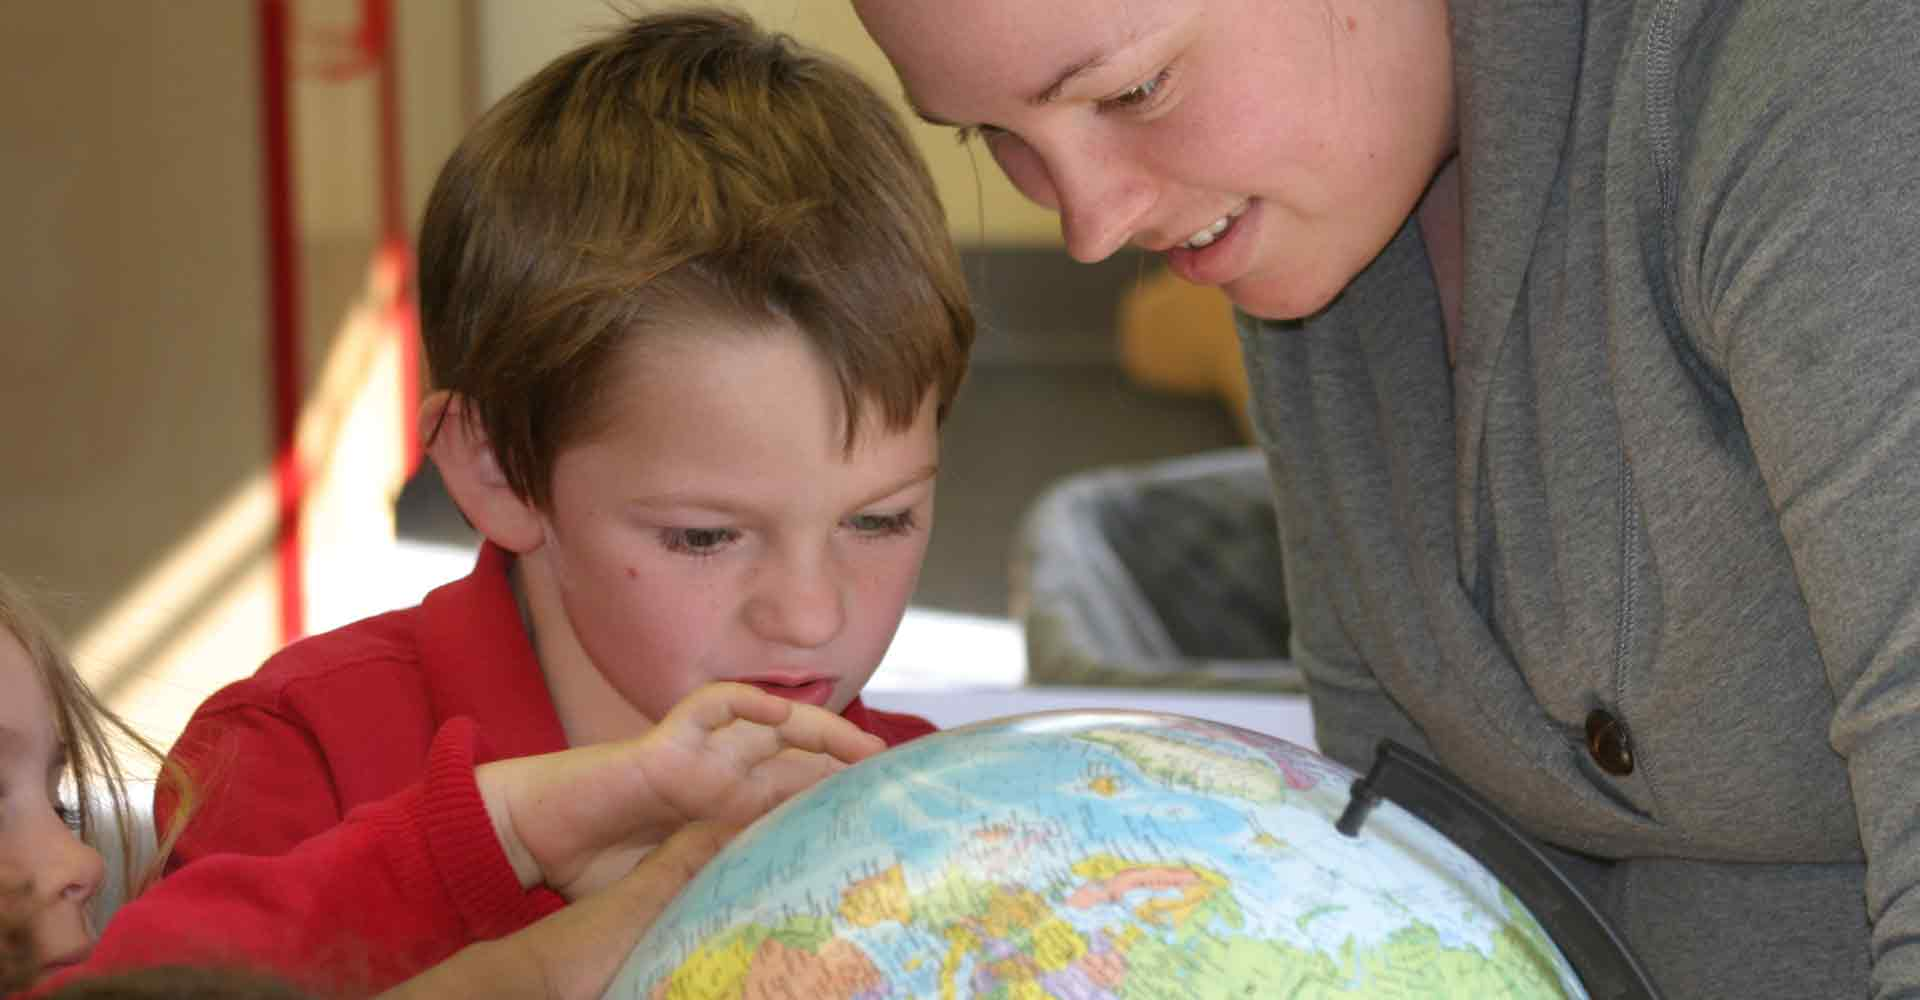 Student working with child on geography with a globe